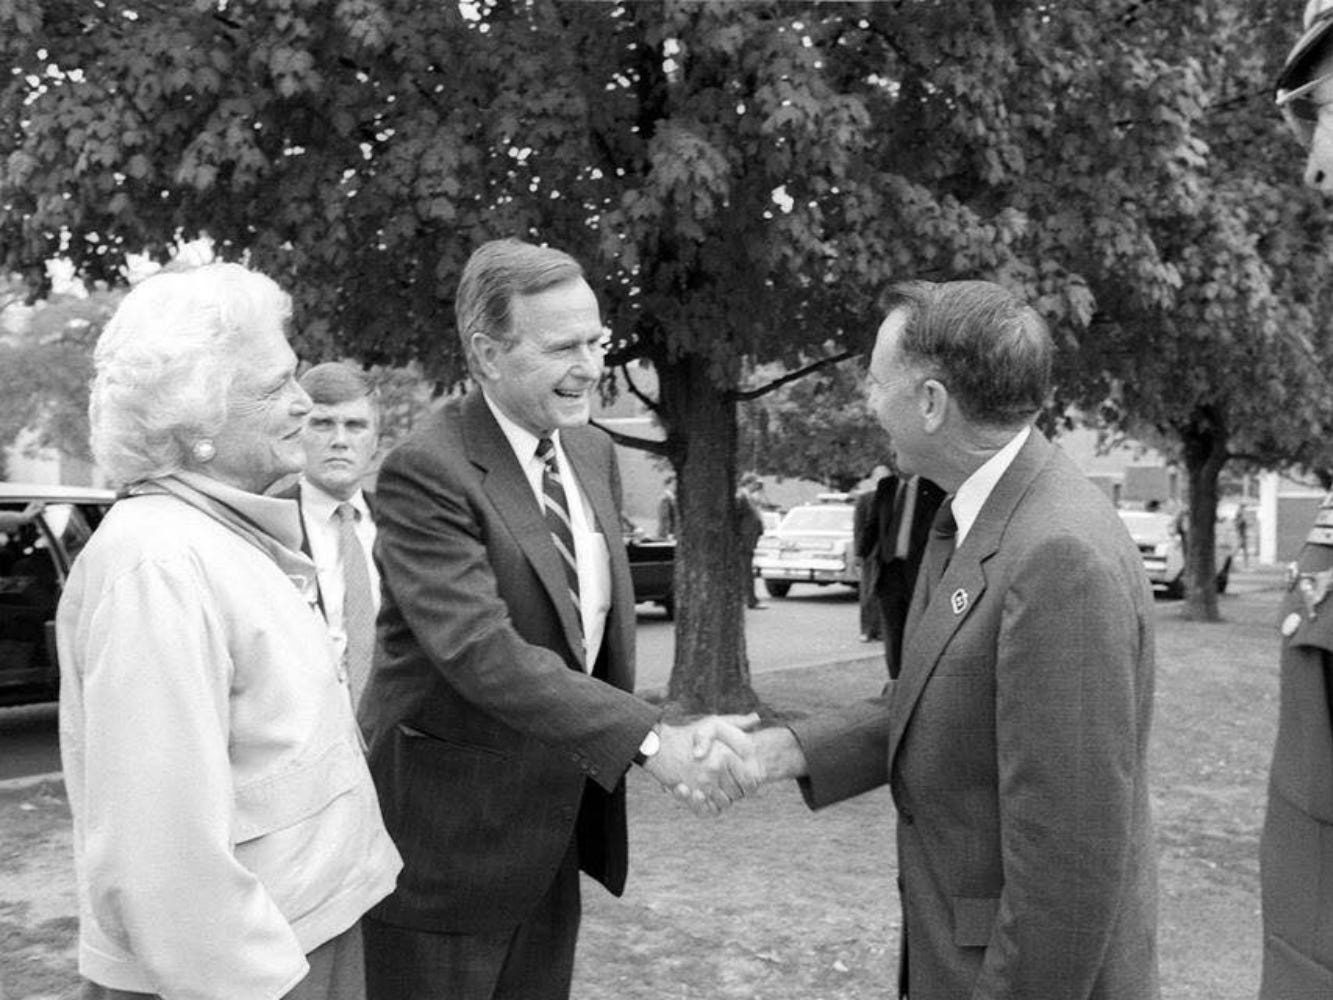 In this Aug. 29, 1988, file photo, Vice President George H.W. Bush, center left, and his wife, Barbara Bush, are welcomed to the Middle Tennessee State University campus by then-president Sam Ingram, center right. At far right is Lt. Col. Cal Calloway, then-chair of the Department of Military Science. The man behind the Bushes is a Secret Service agent. The Bushes were visiting MTSU as part of a fundraising trip to Nashville during the 1988 presidential campaign.